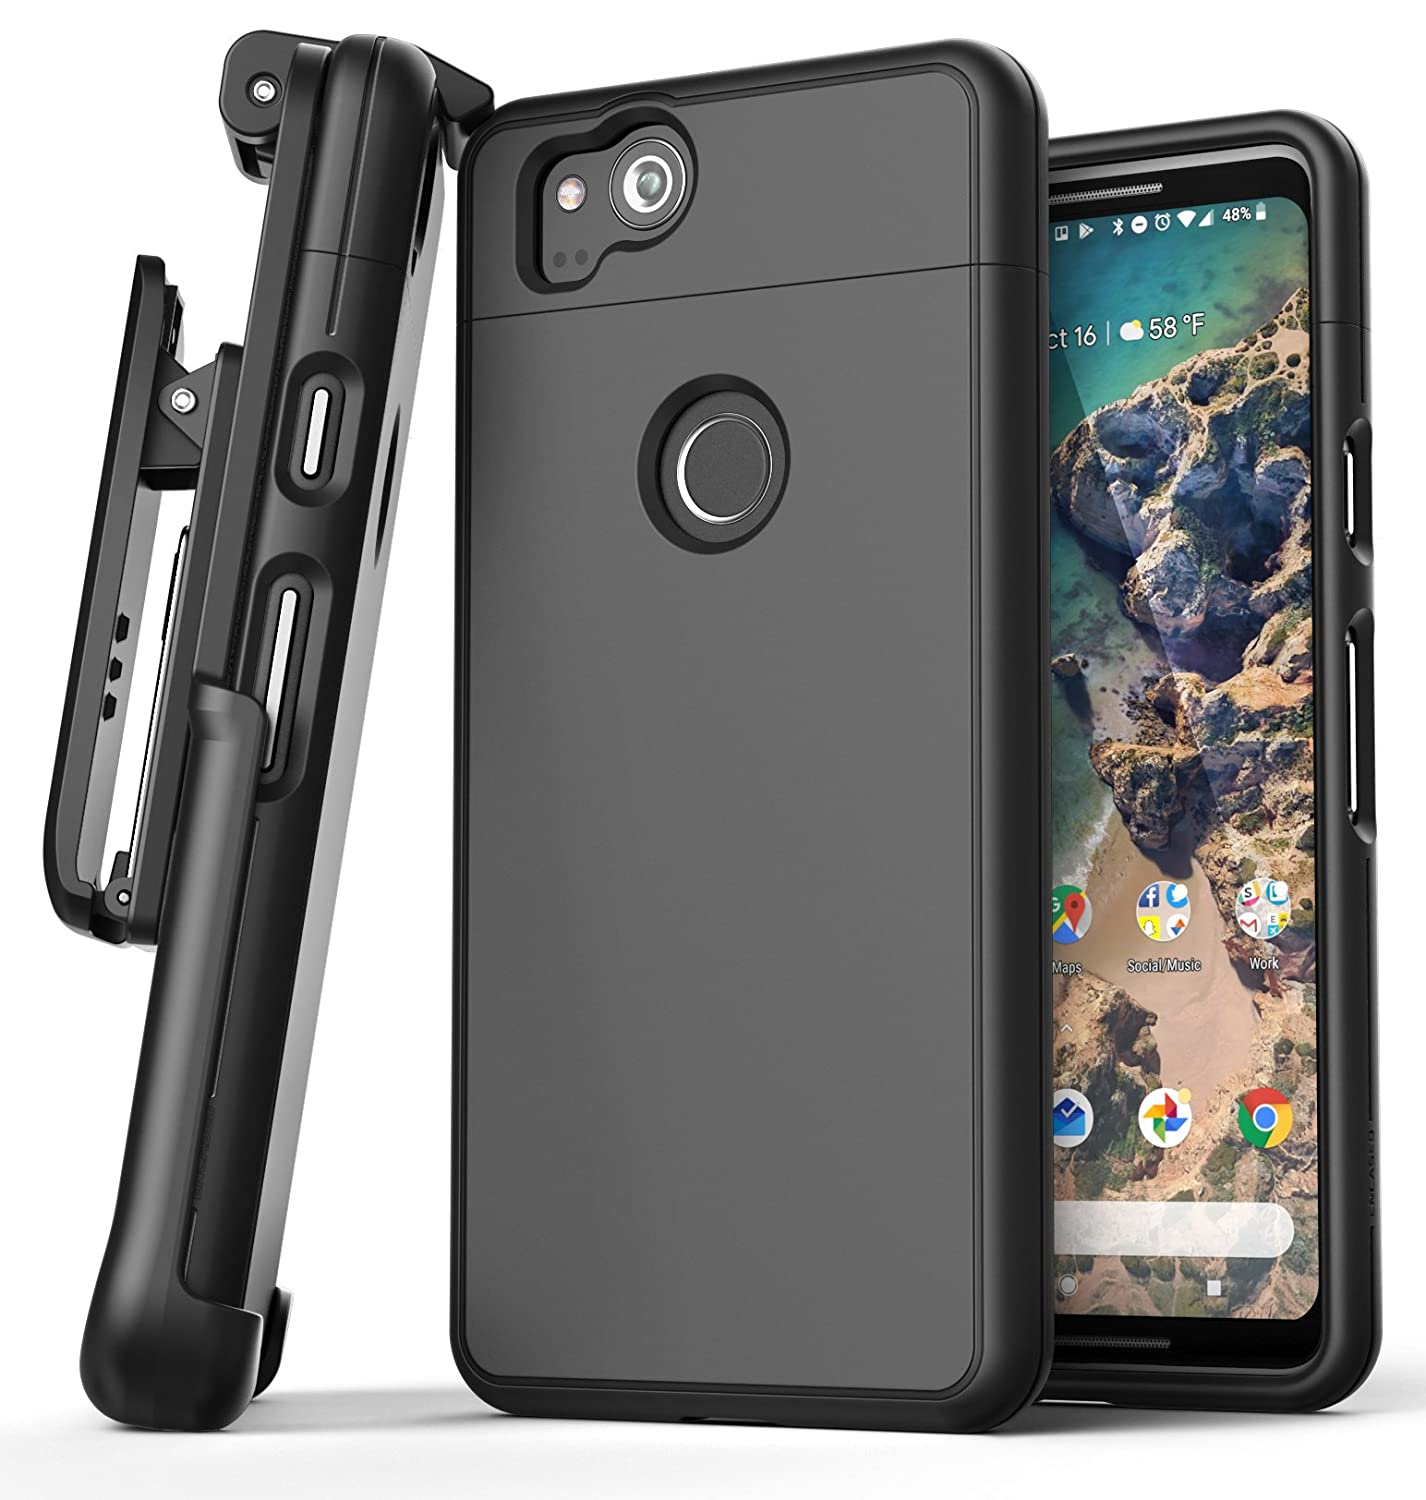 lowest price 95407 2aa9b Google Pixel 2 XL Belt Case [SlimShield Edition] Protective Grip Case with  Holster Clip for Pixel 2 XL (Black) by Encased